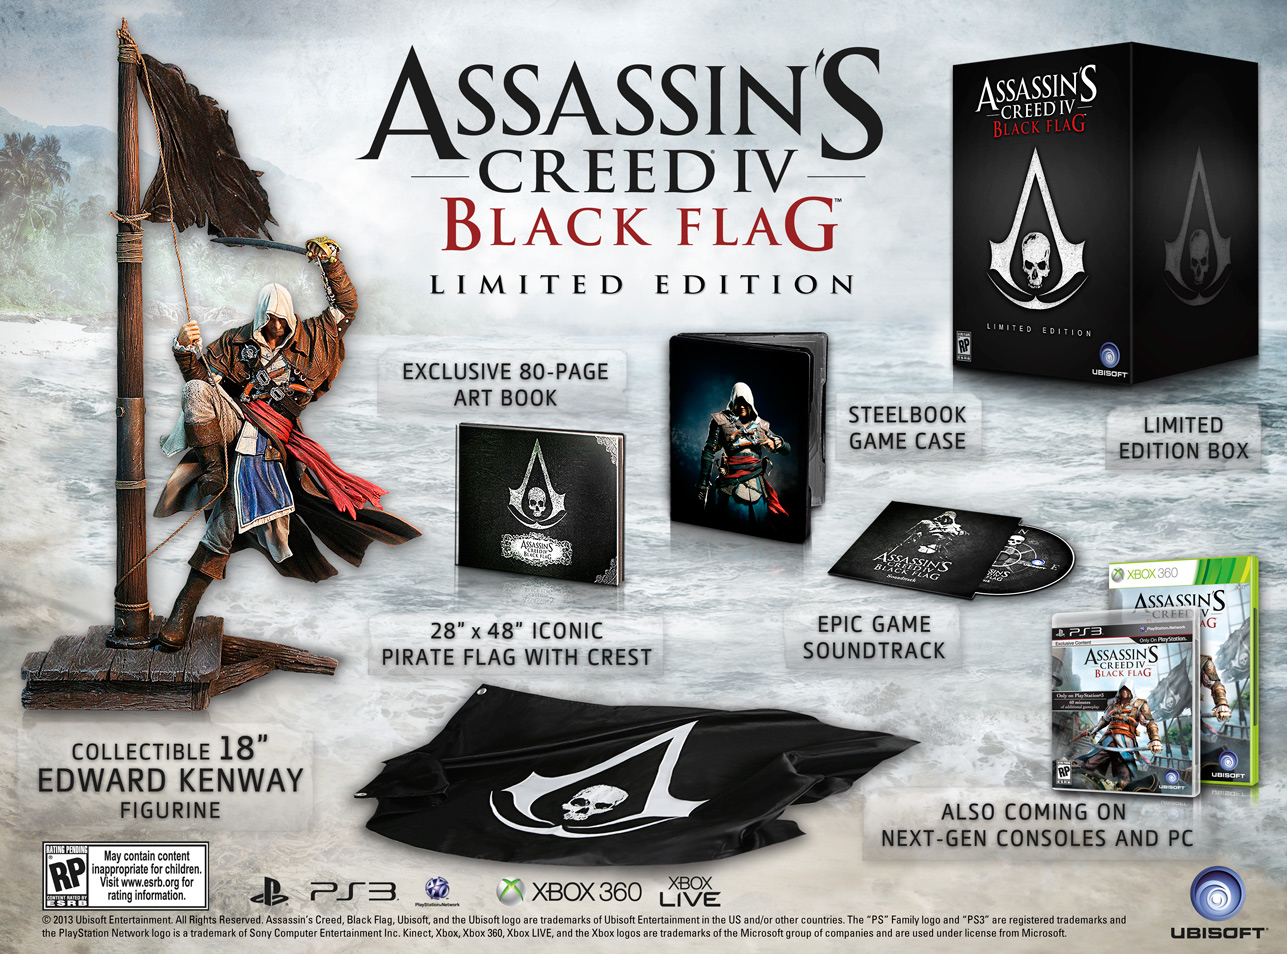 ... and released a new trailer for Assassin's Creed IV: Black Flag